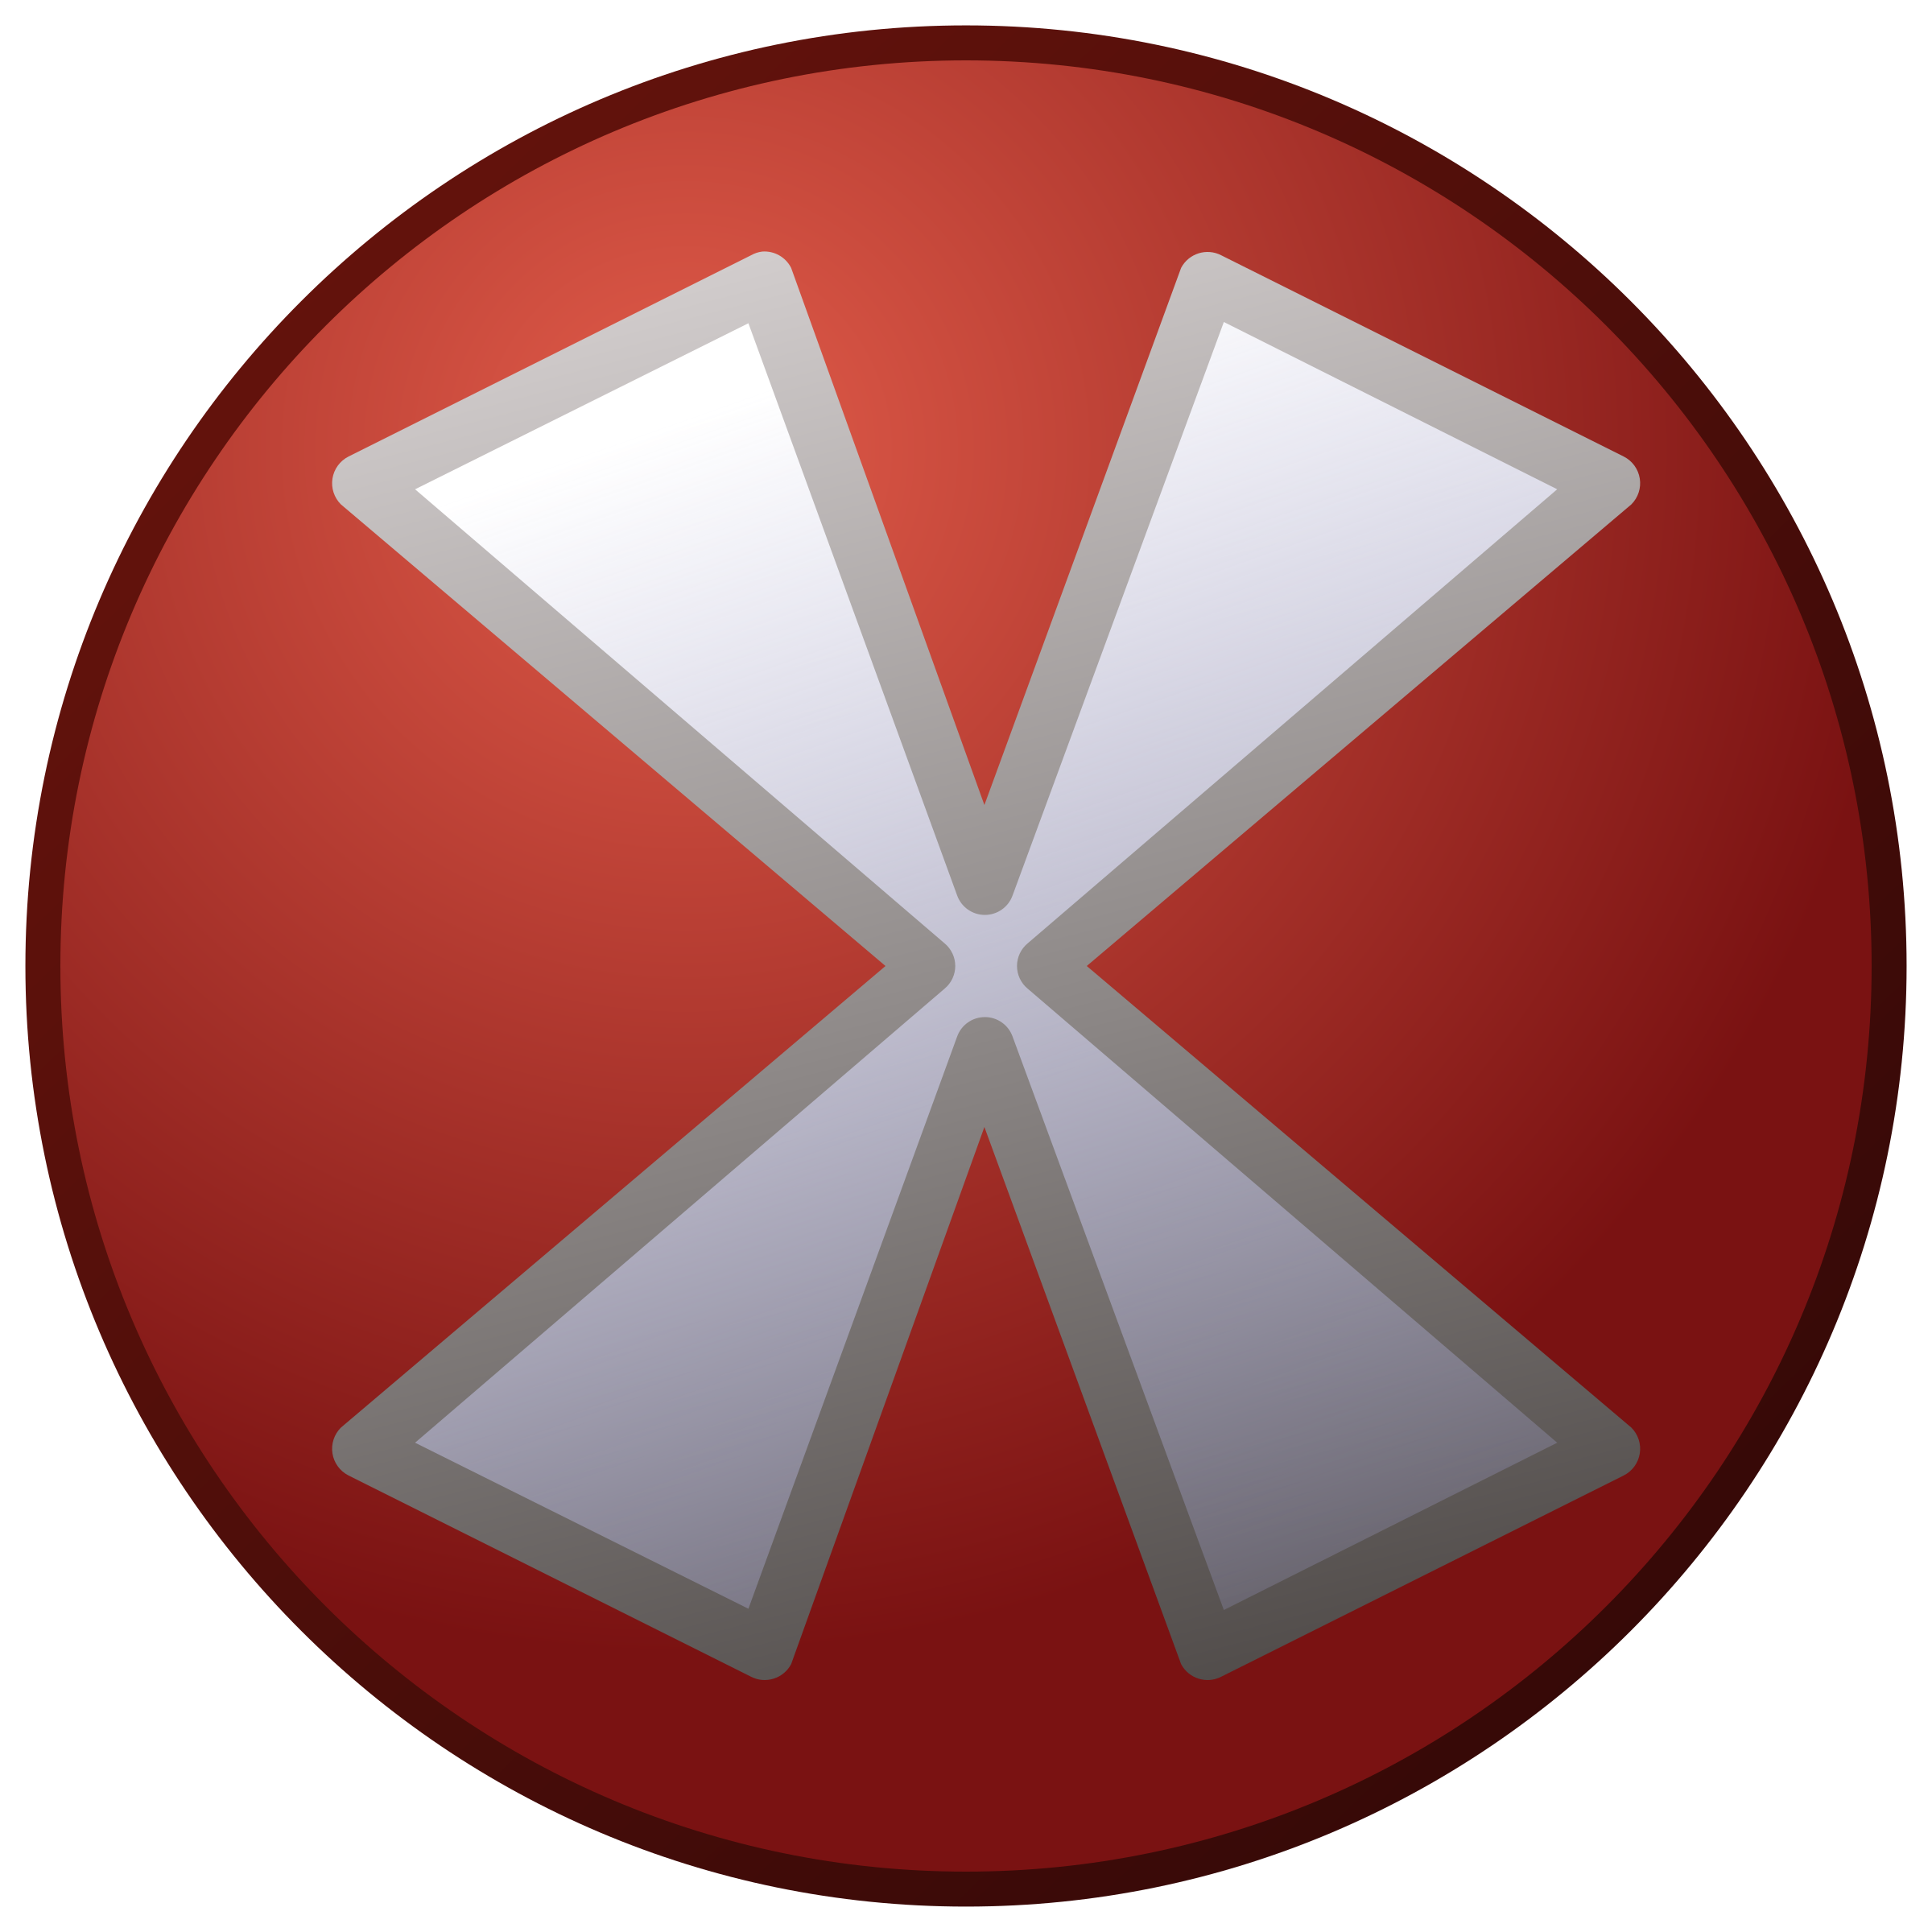 red_cross by jean_victor_balin